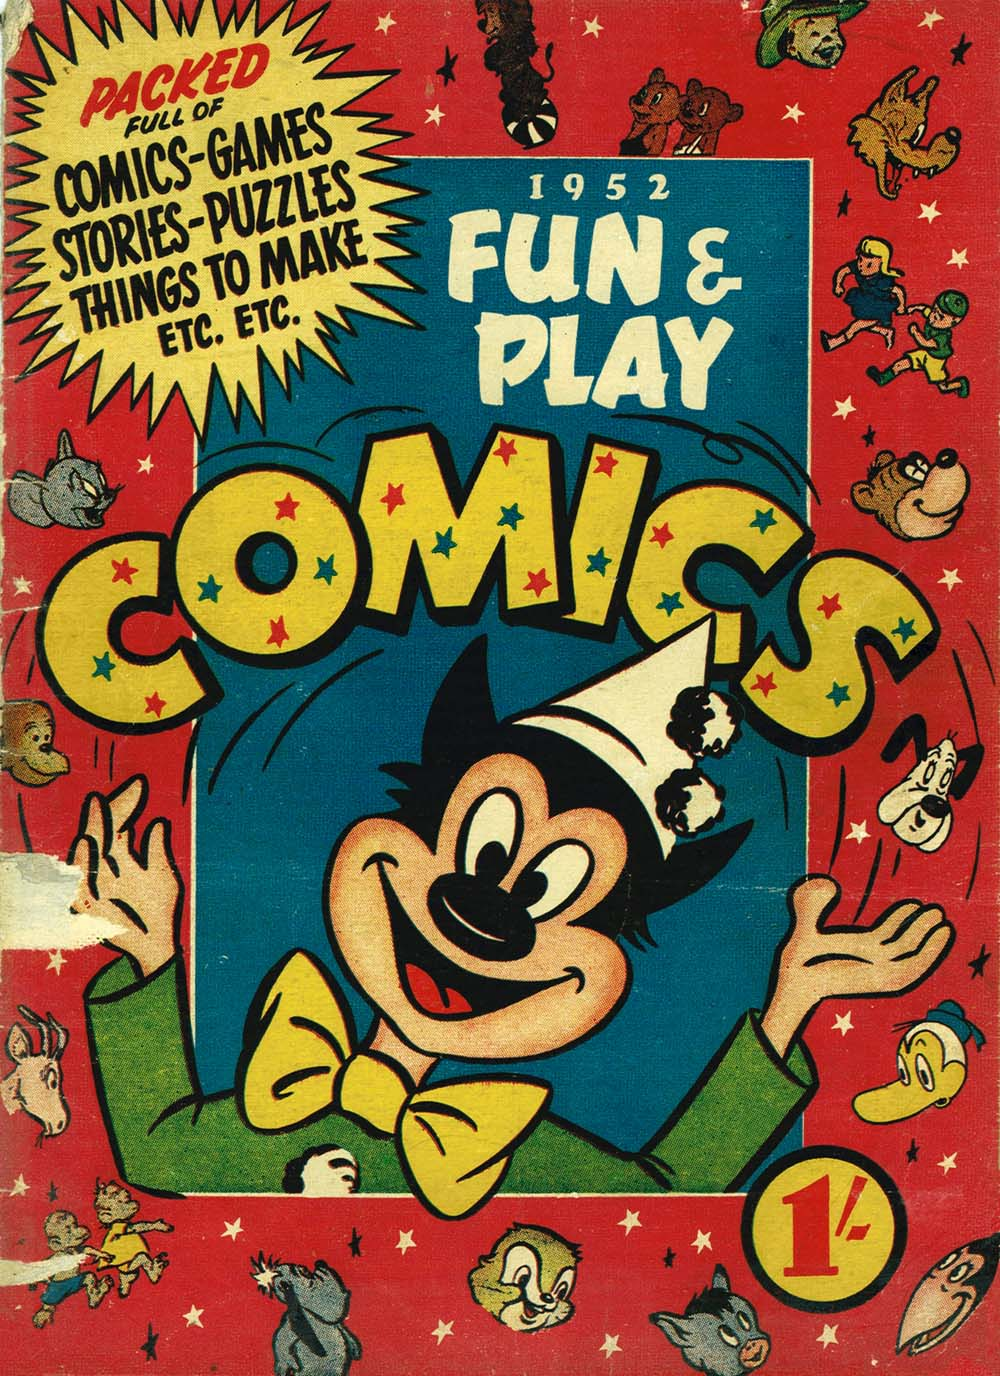 1952 Fun & Play Comics